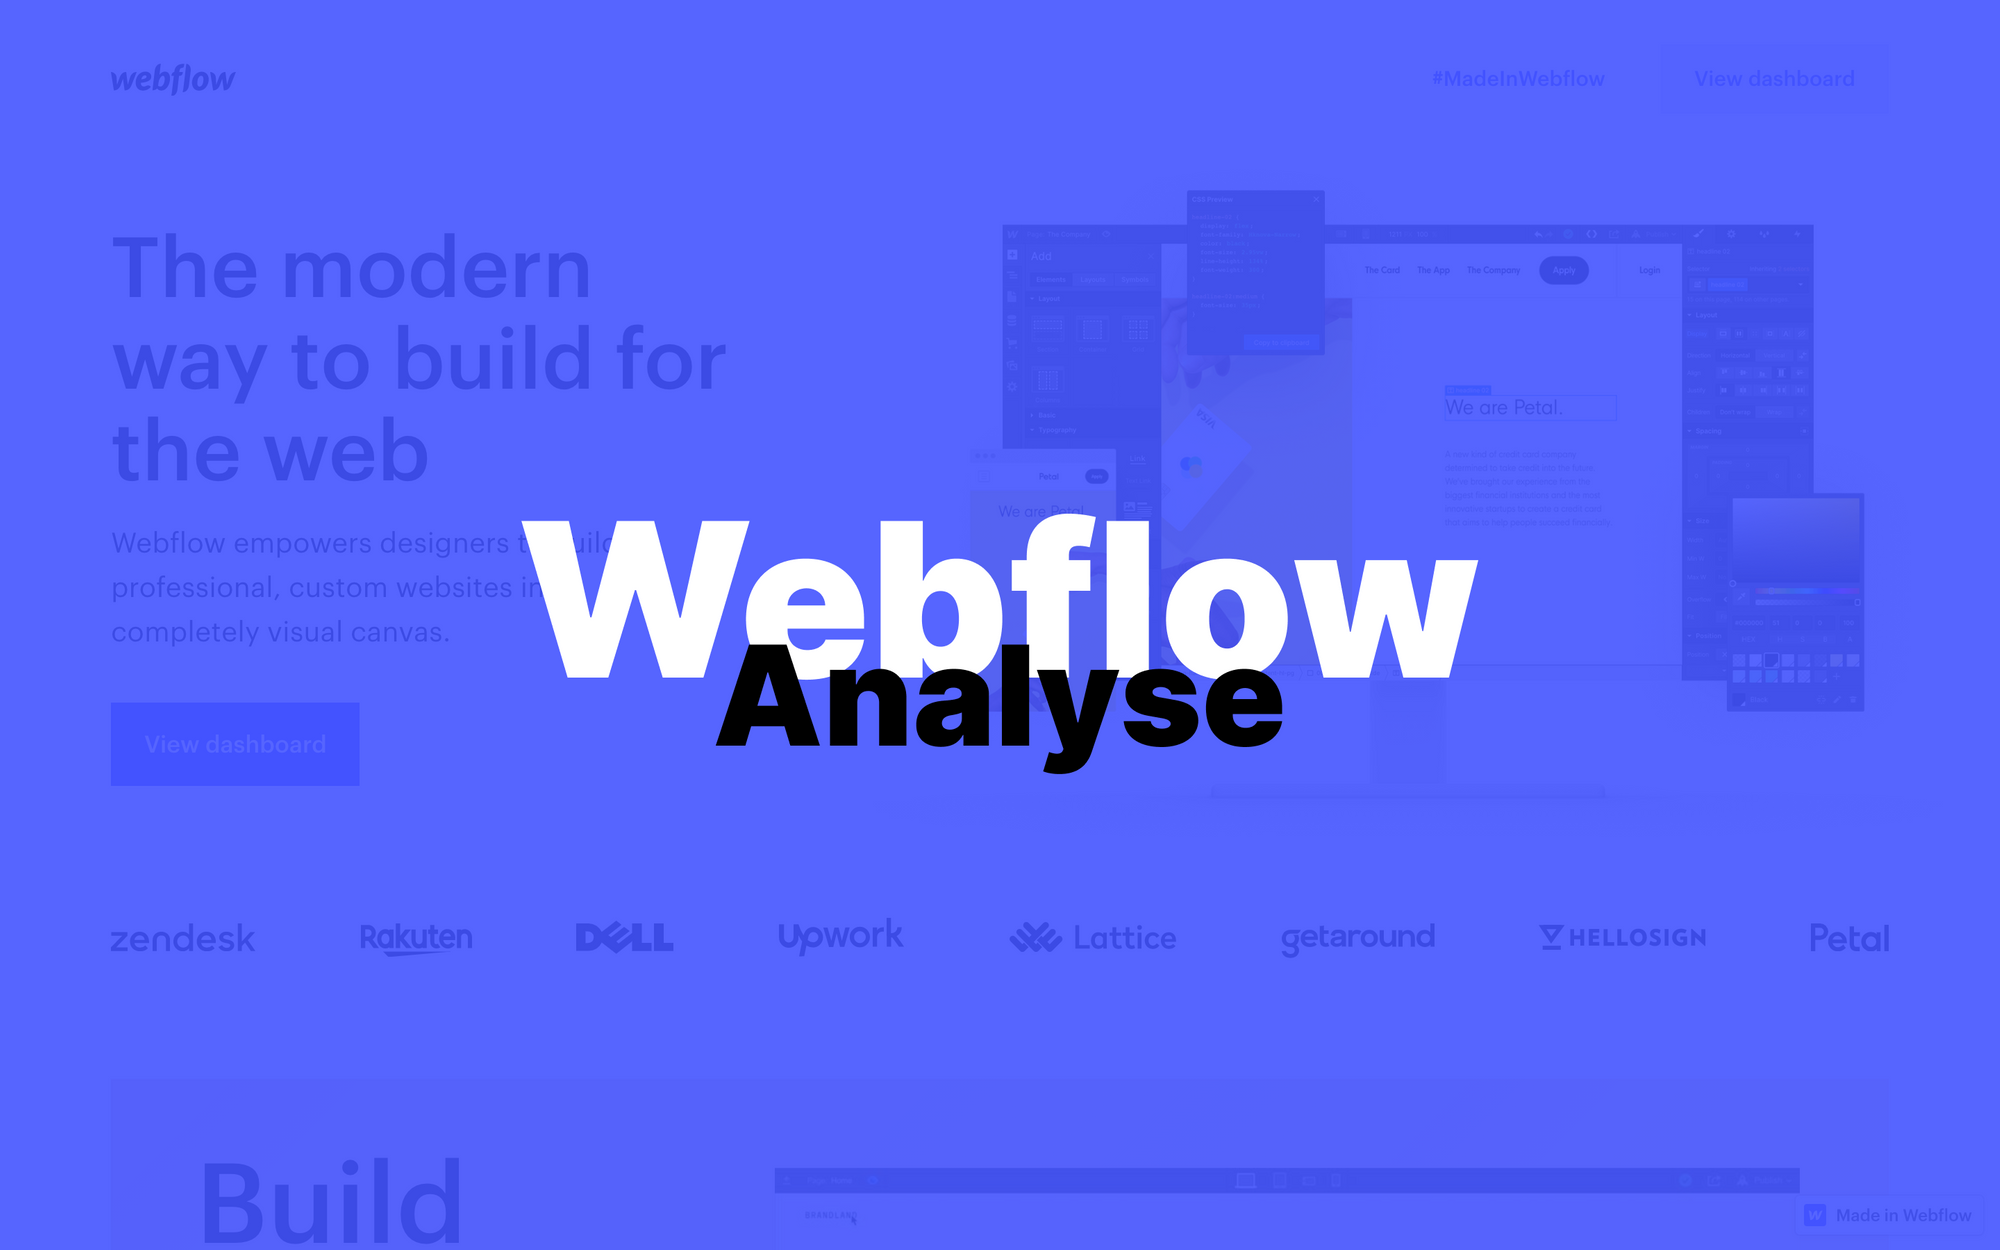 Analyse de Webflow - Créer un site web sans coder